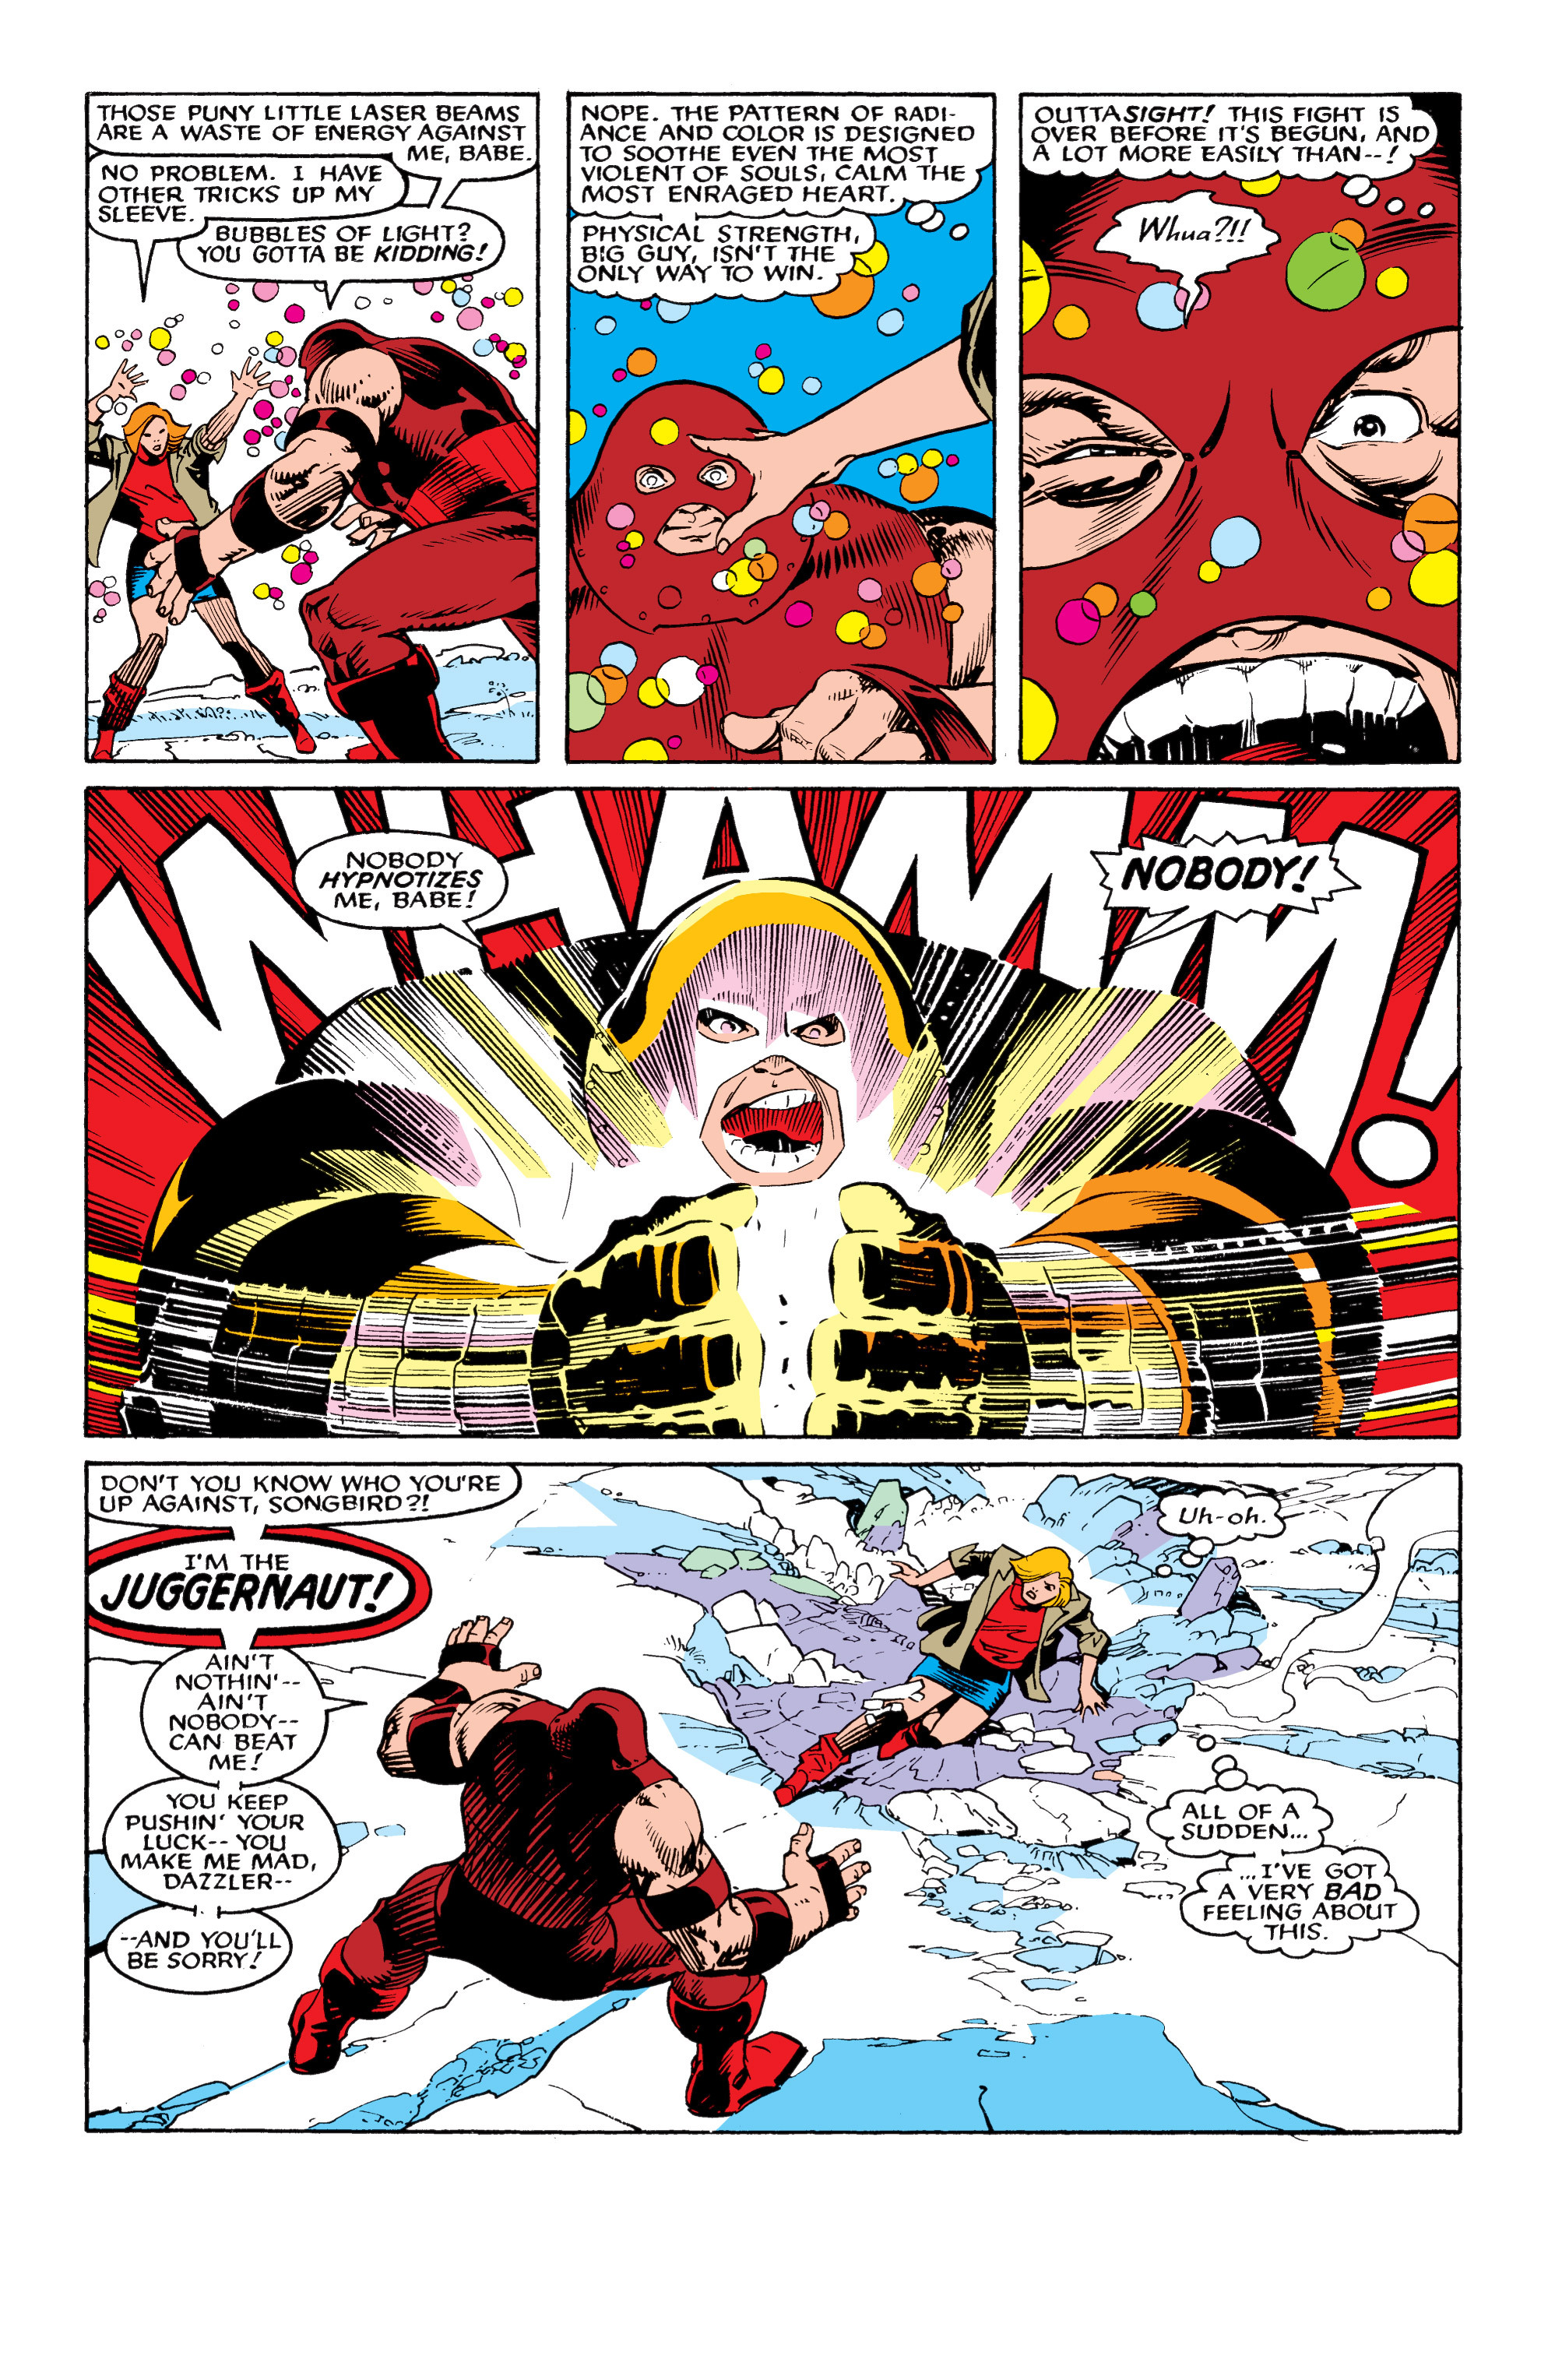 Janet van dyne wasp avengers earth039s mightiest heroes - 3 1